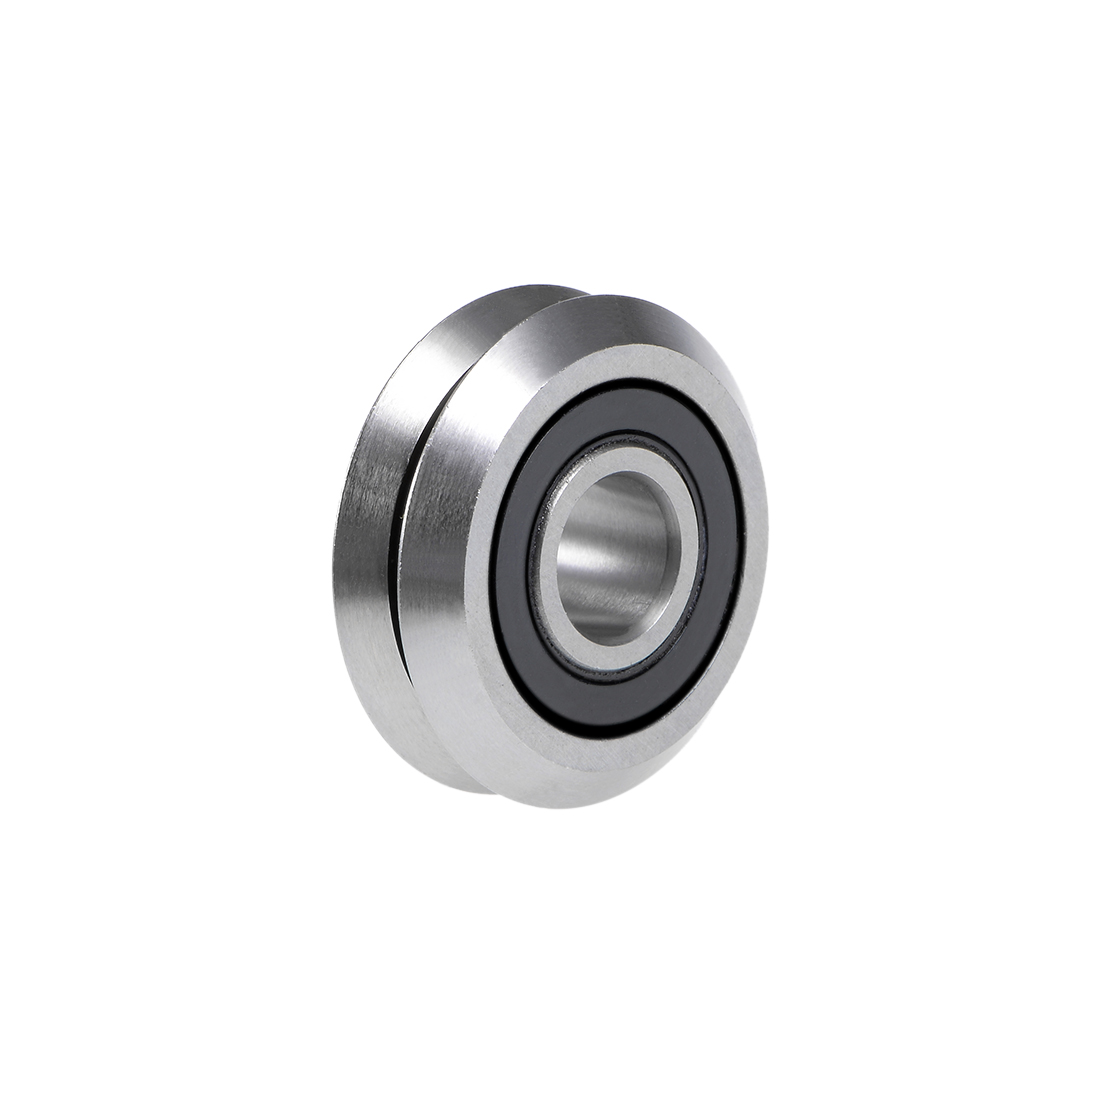 """W2-2RS W-Groove Ball Bearing 3/8""""x1-1/5""""x4/9"""" RM2-2RS Guide Pulley Bearings"""